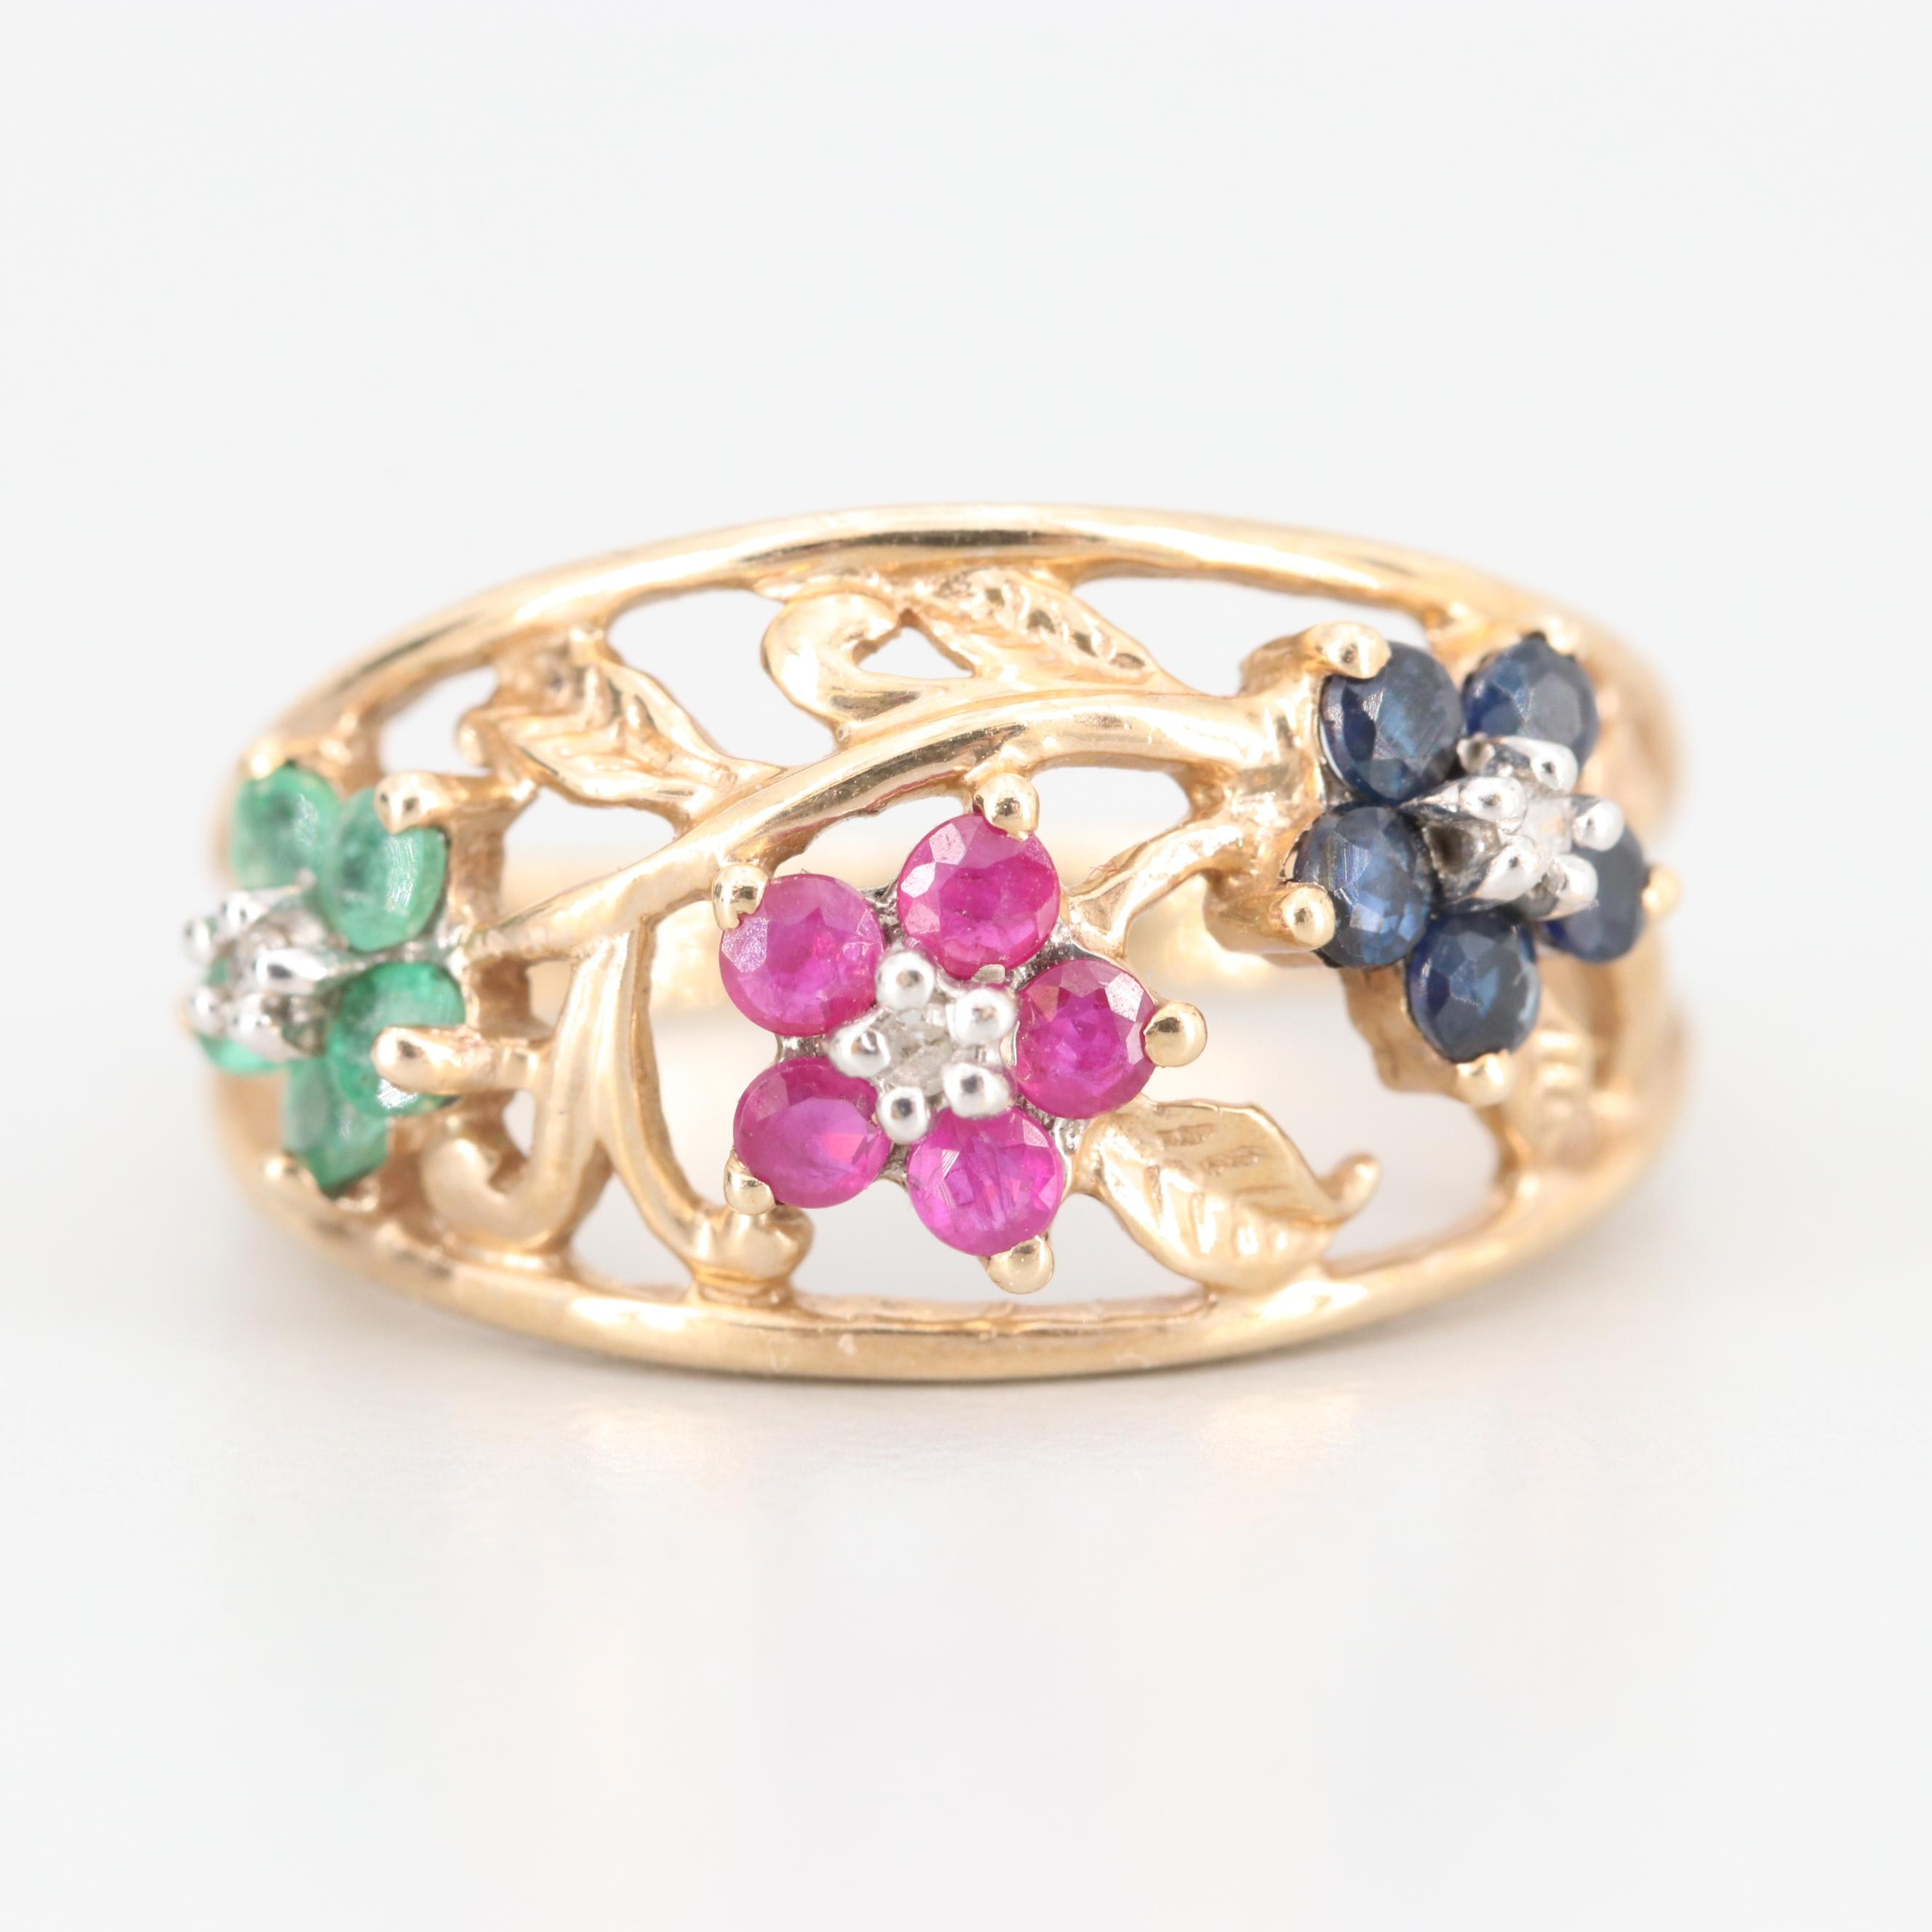 10K Yellow Gold Ruby, Sapphire, Emerald and Diamond Floral Ring